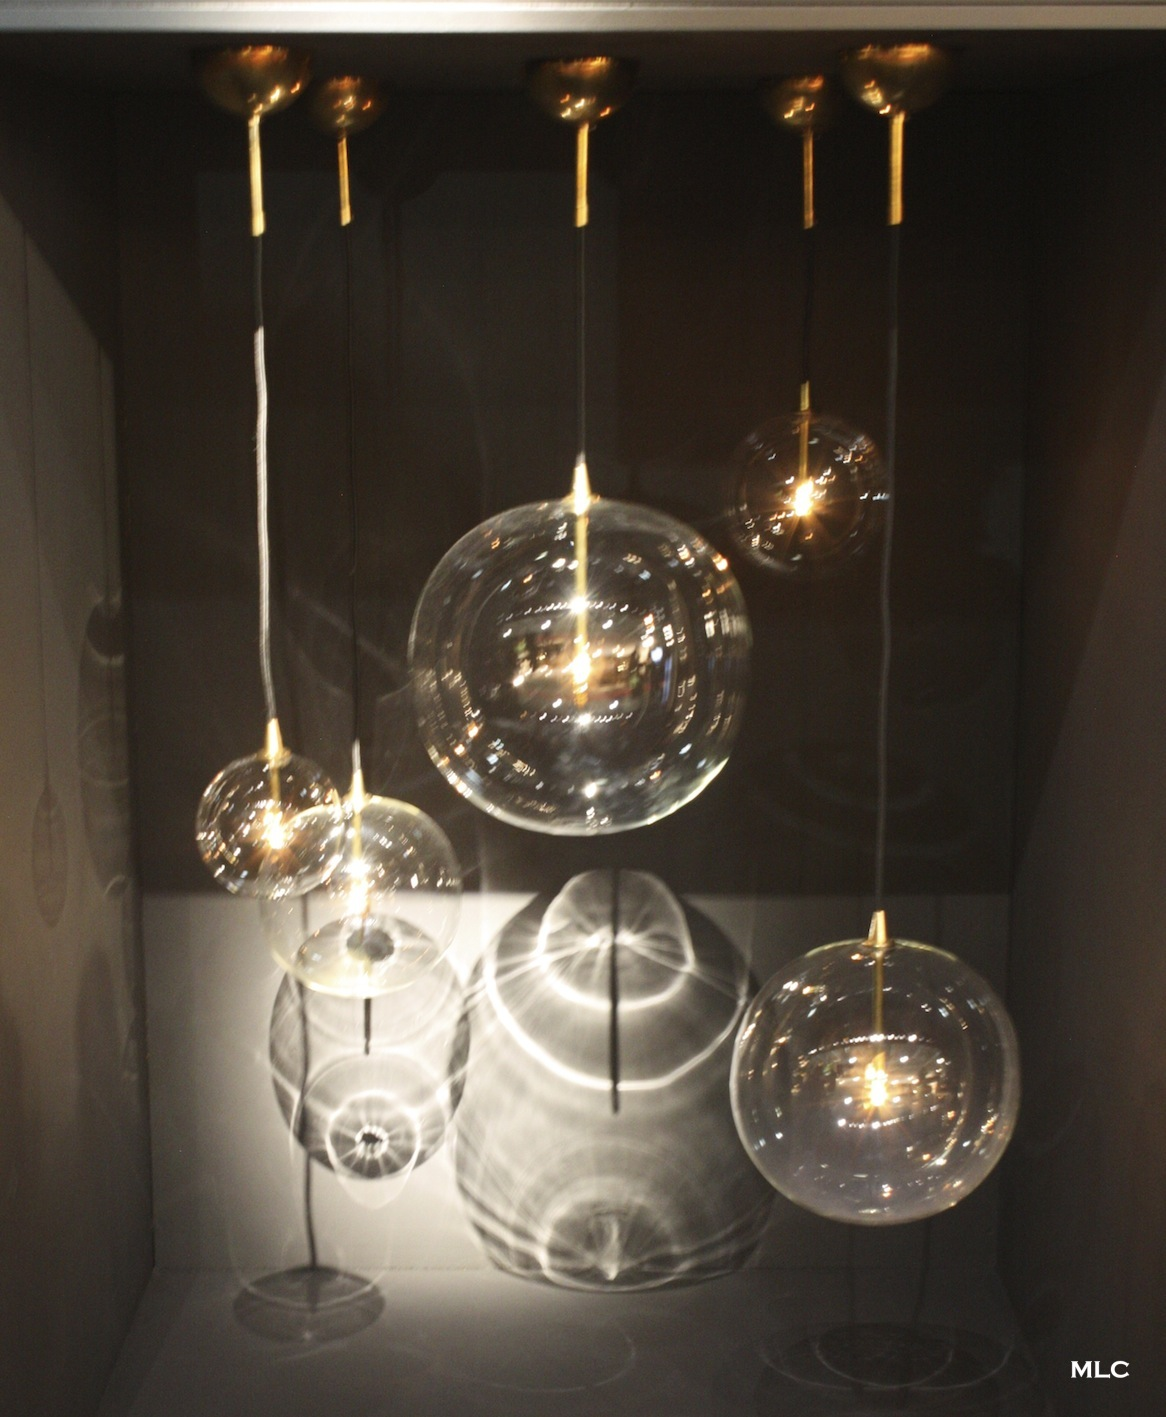 Lustre archives le blog d co de mlc for Luminaire lustre design